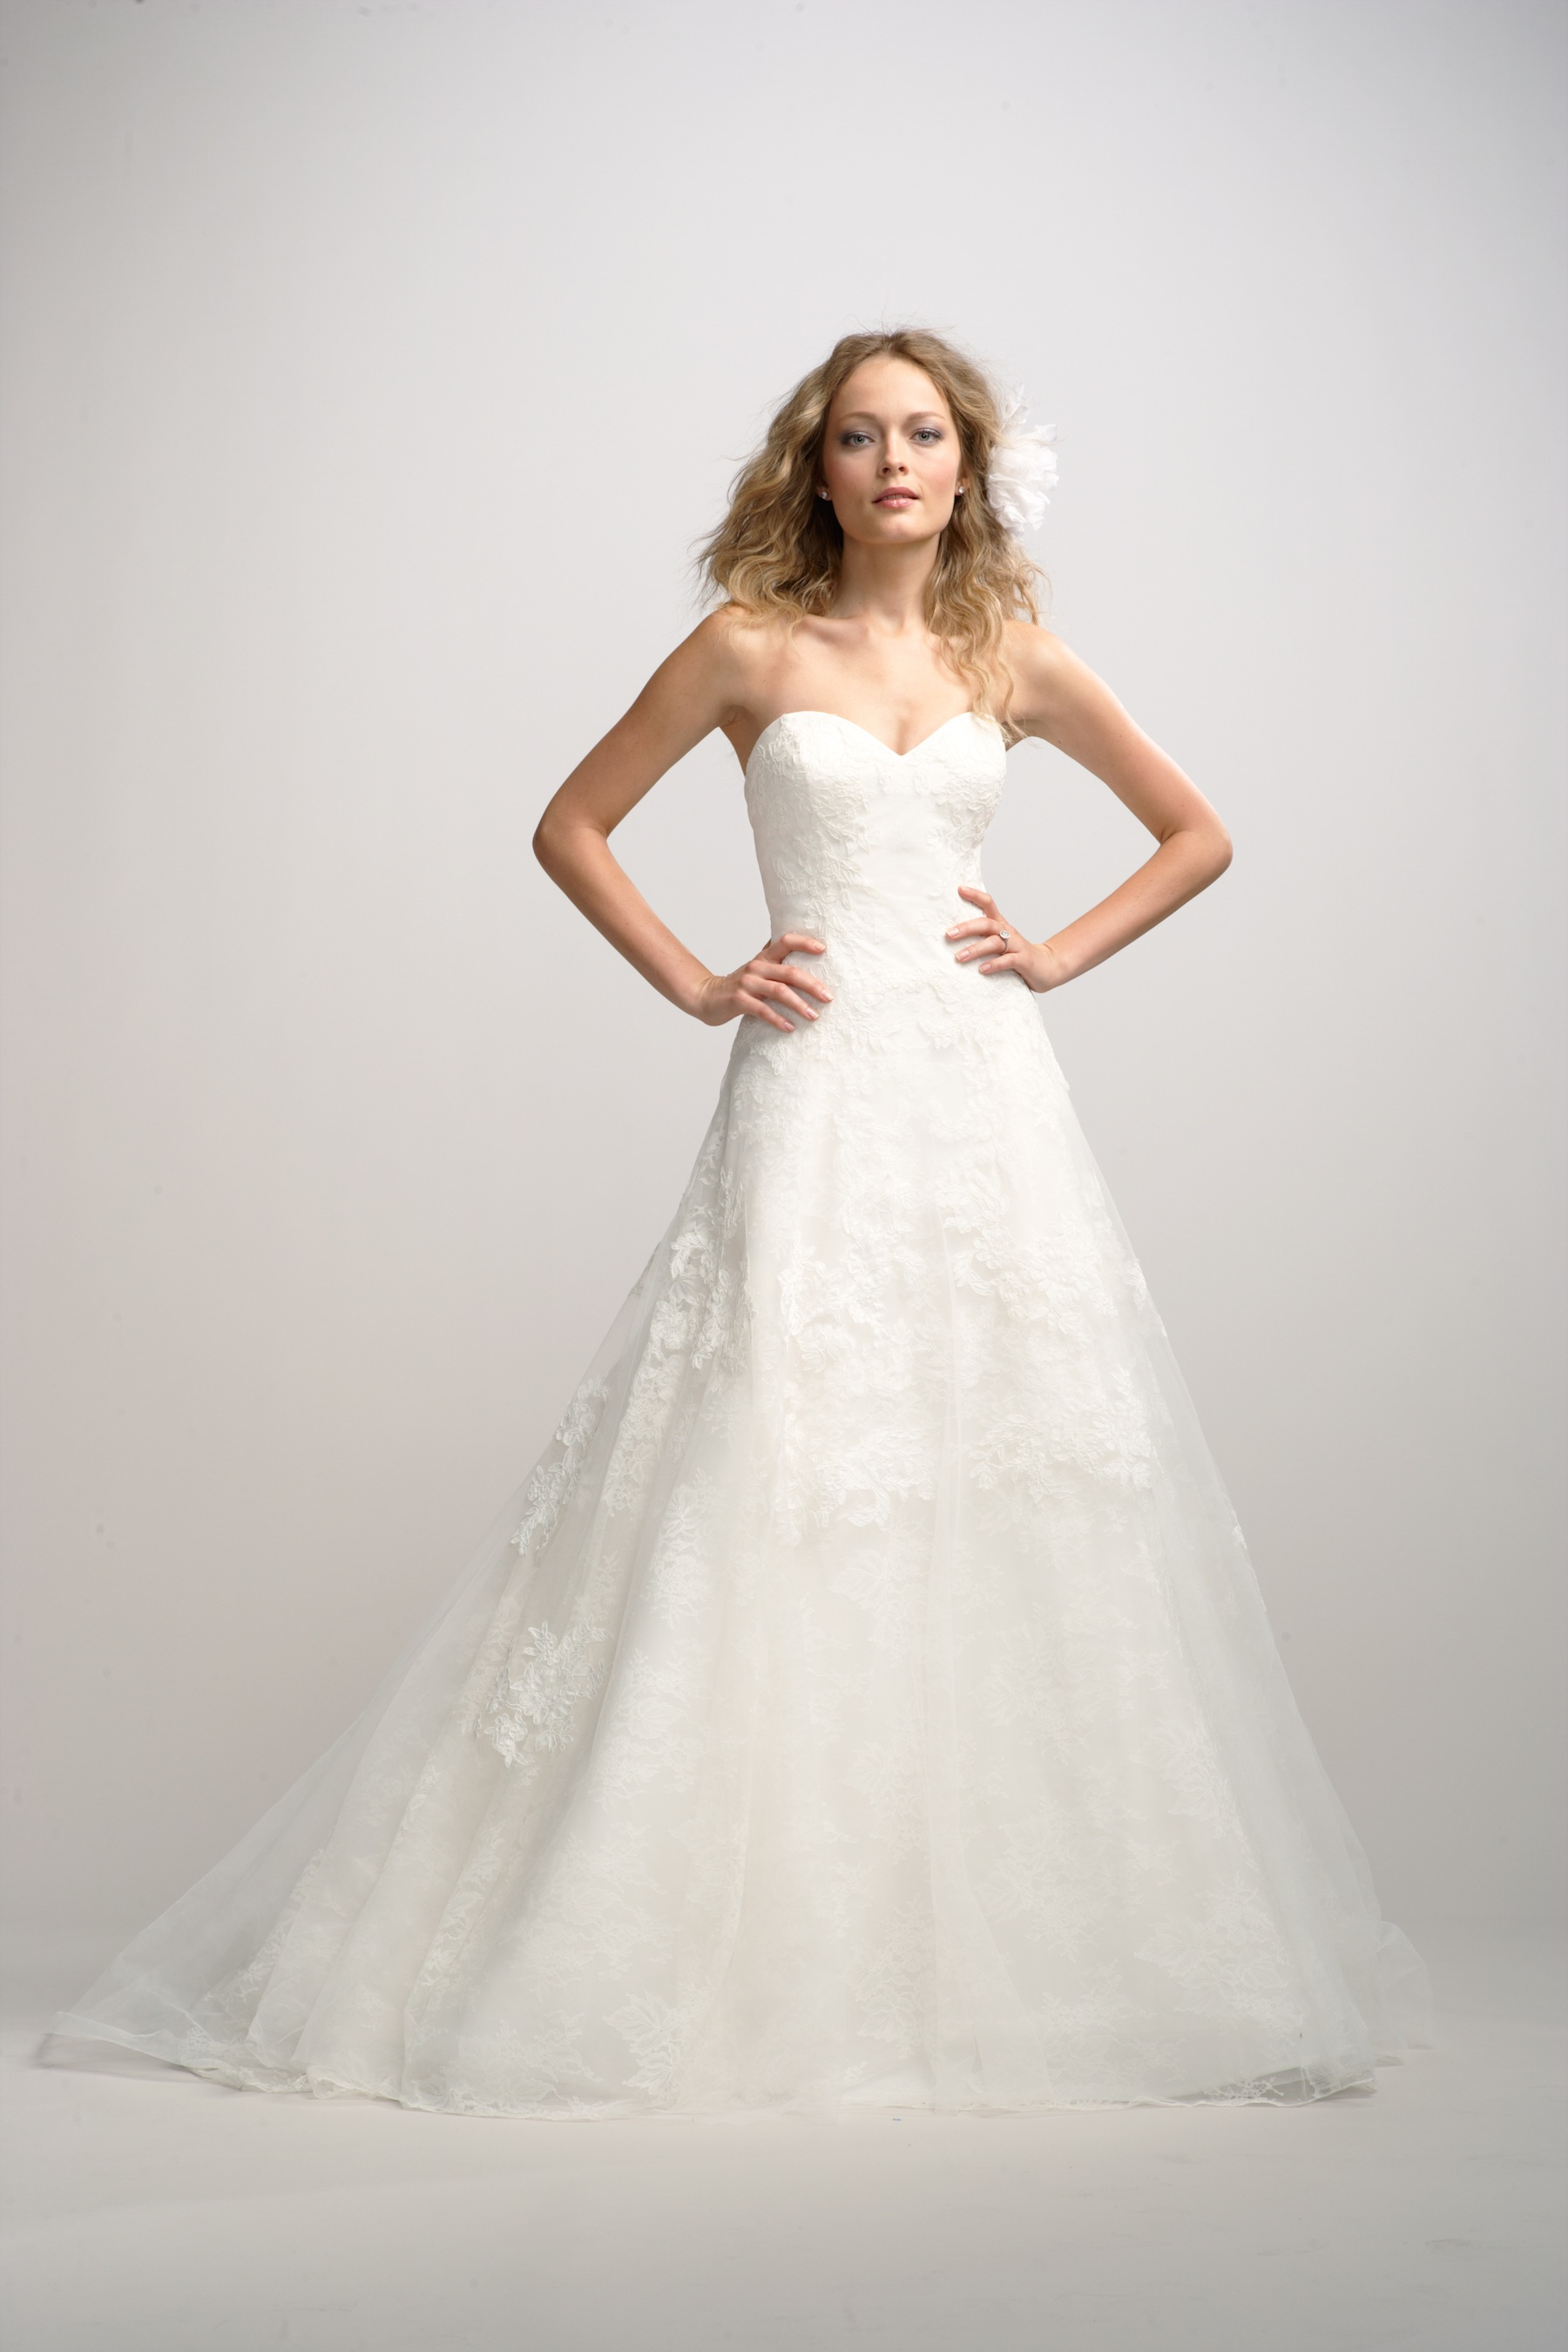 Fall-2012-wedding-dress-watters-bridal-gown-16.original.original